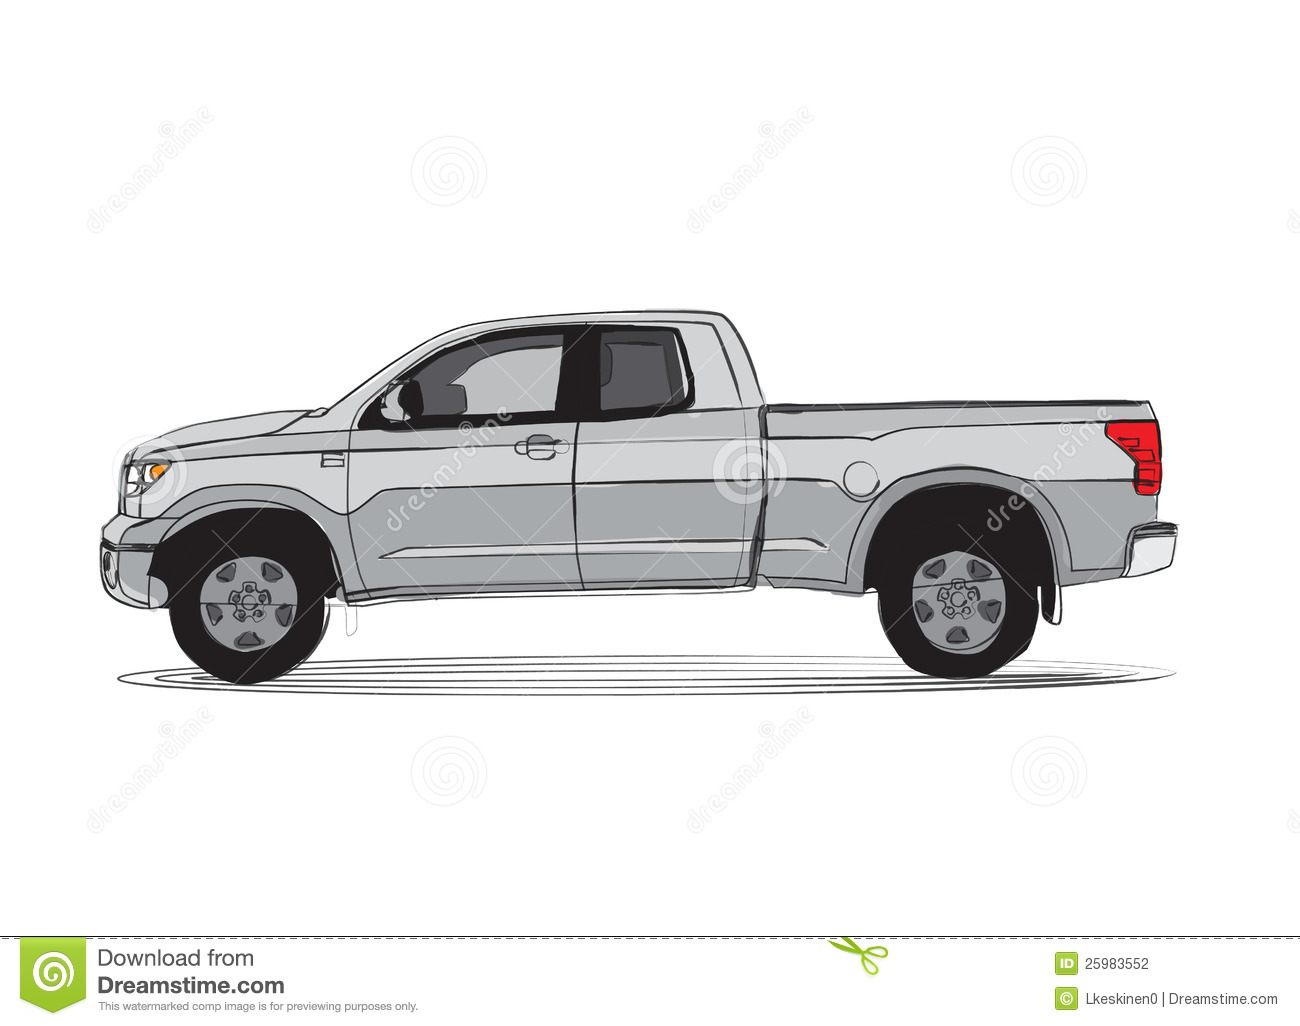 pick up truck cartoon style drawing 25983552